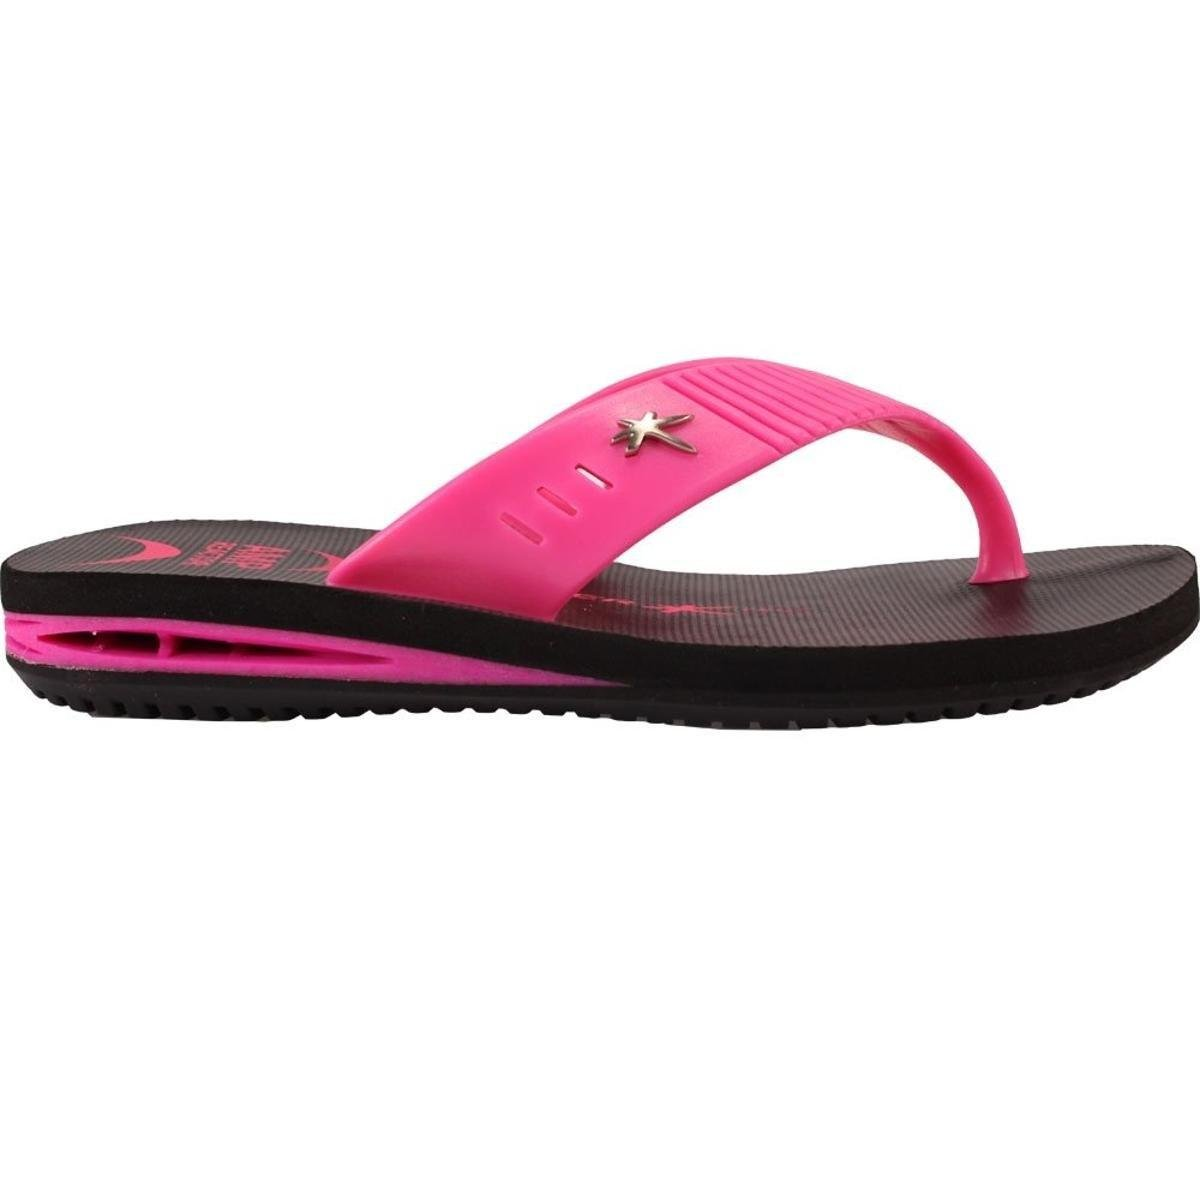 Kenner Chinelo Preto Chinelo Reactor Kenner High e Trop Rosa Amp yFUfWqcUZ